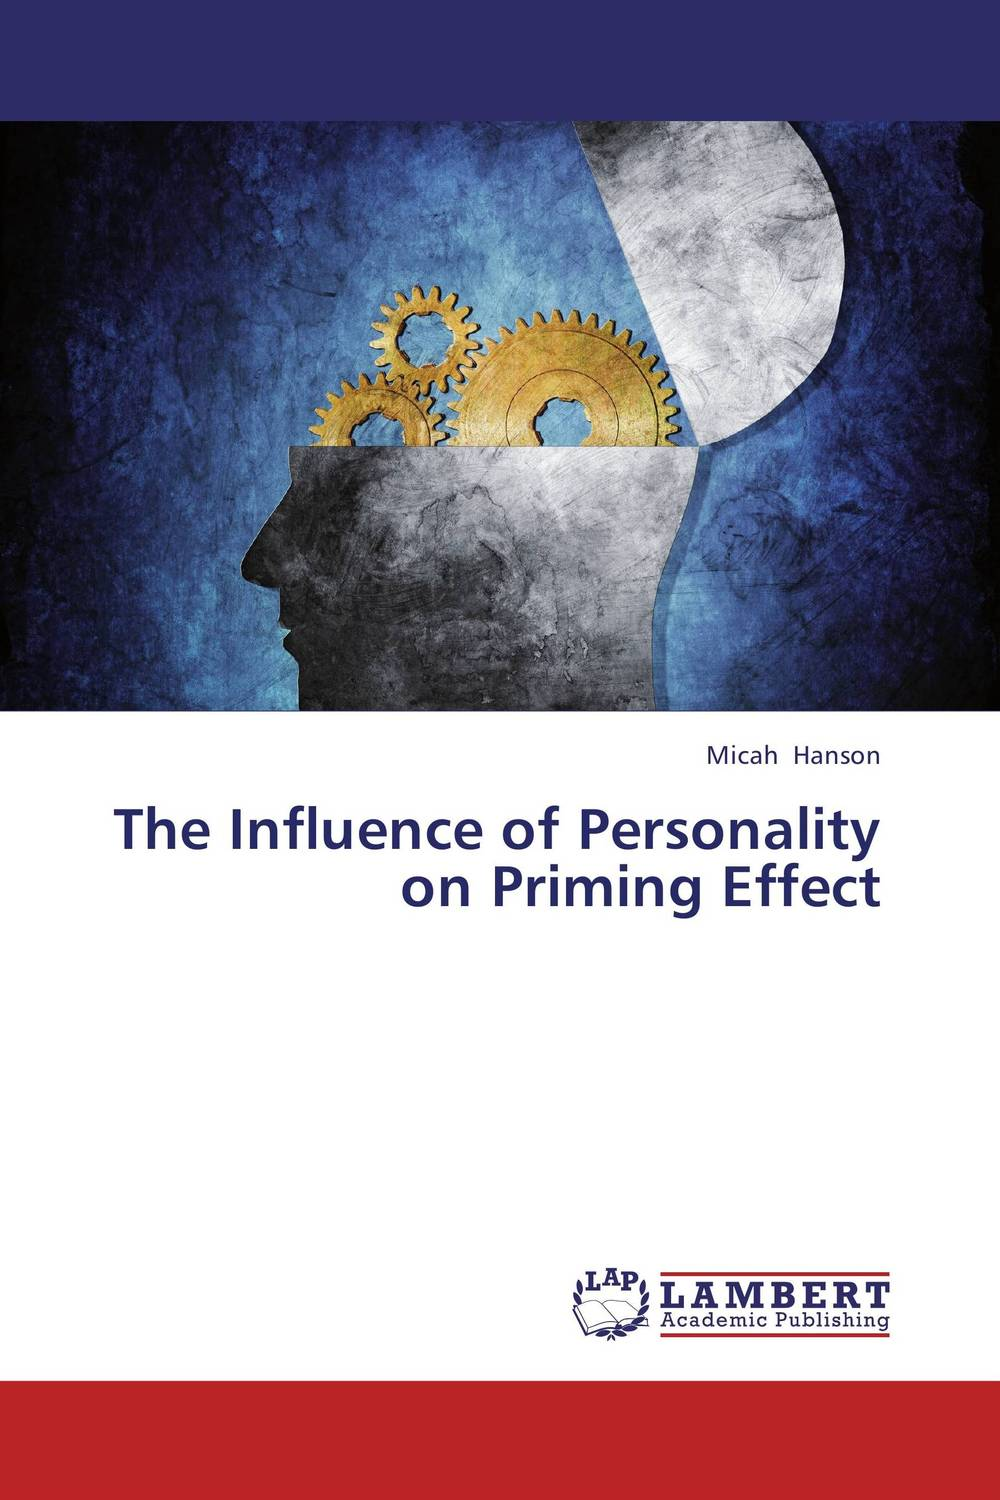 The Influence of Personality on Priming Effect k mukerji mukerji assessment of delinquency – an examinati on of personality